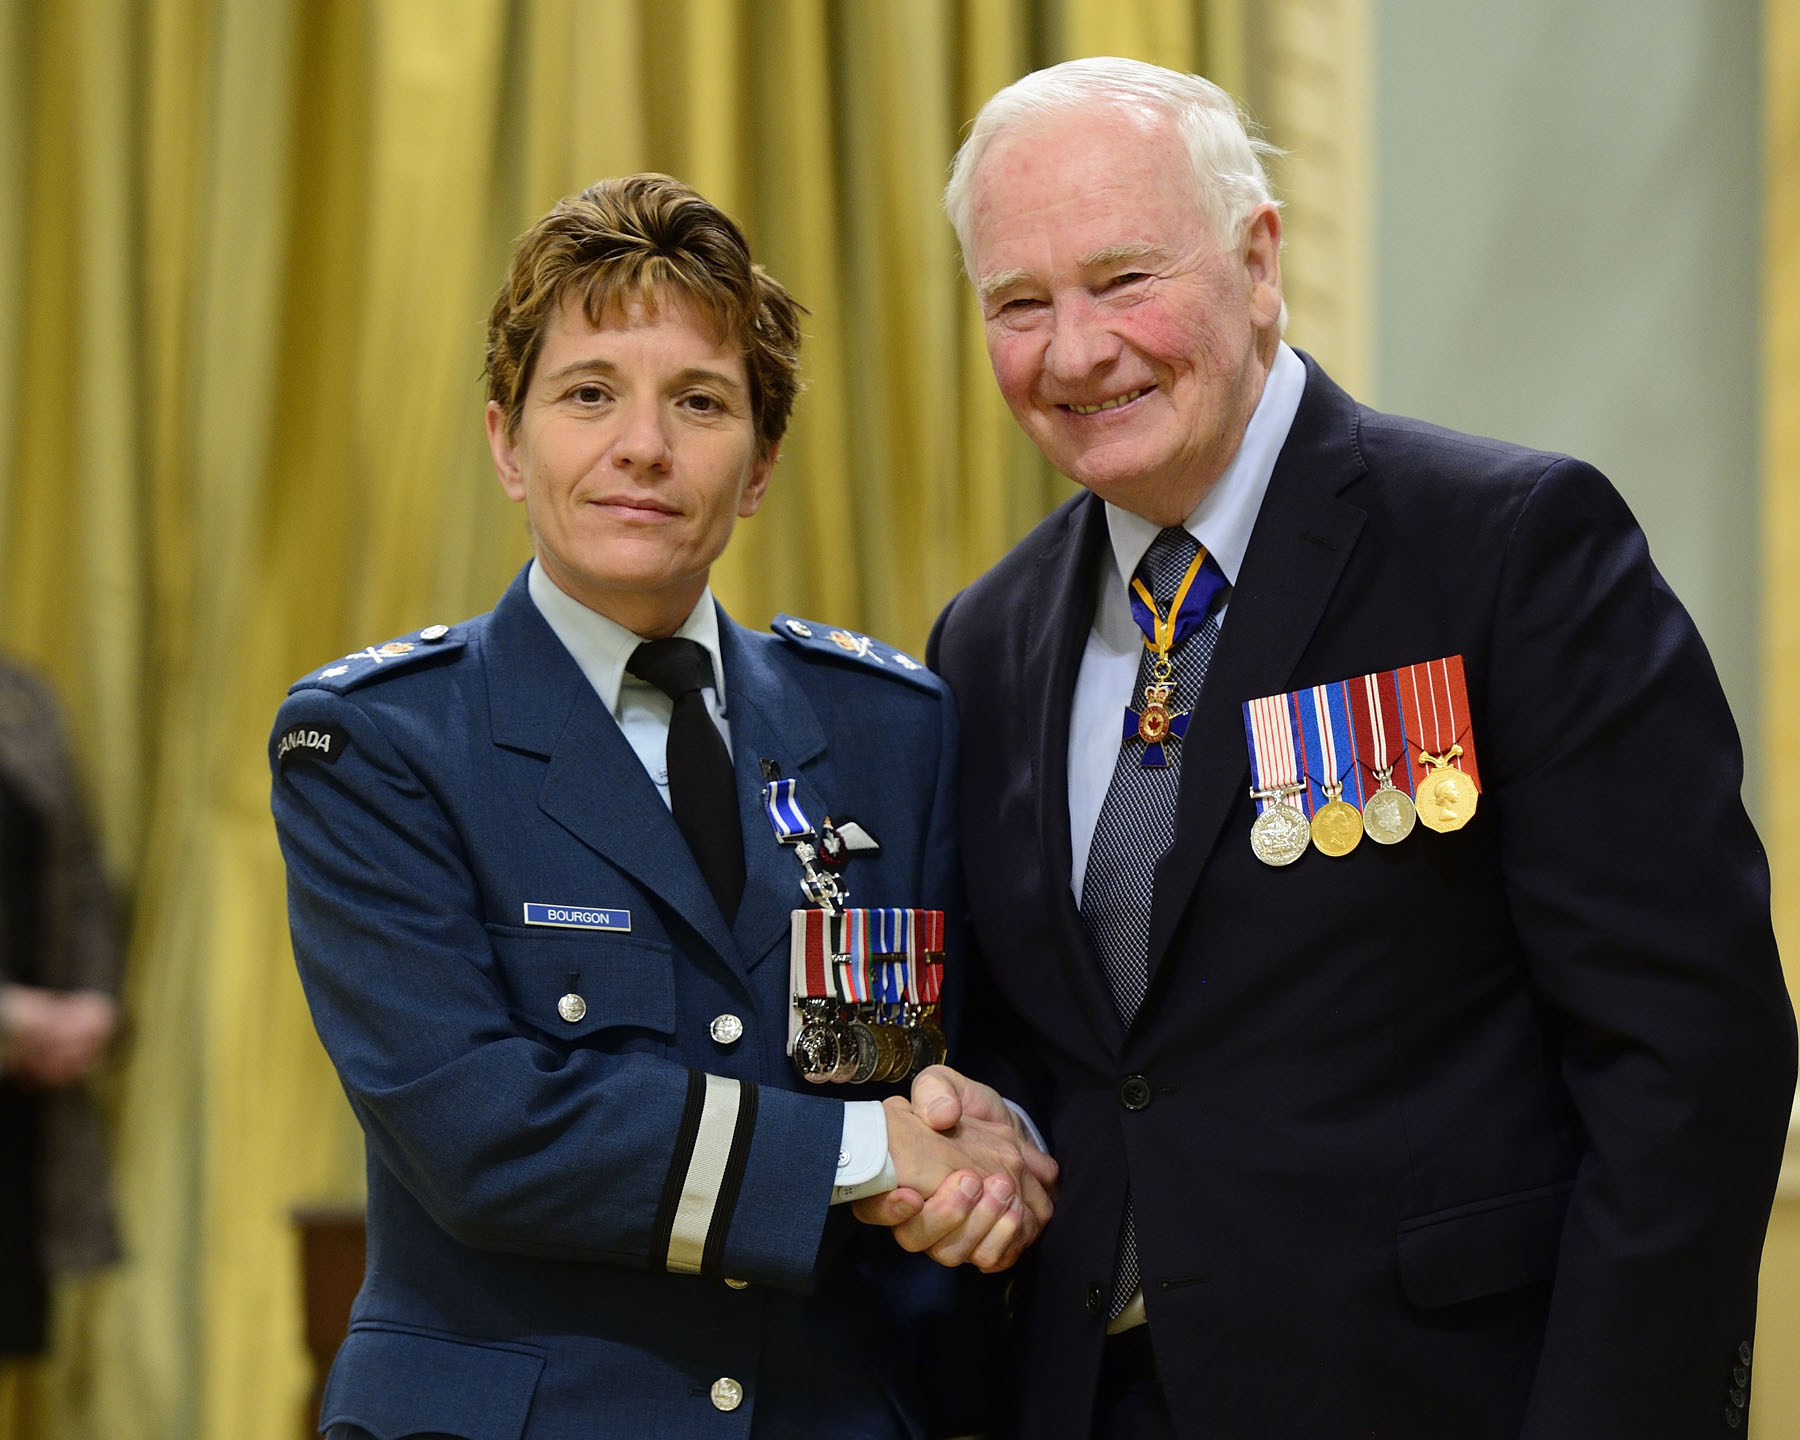 As commander of Joint Task Force-Iraq from May to November 2015, and through her outstanding leadership, Colonel Marie Hélène Lise Bourgon, M.S.C., C.D. ensured the success of a combat mission against the Islamic State in Iraq and Syria. She successfully managed numerous issues, with particular attention given to the morale and well-being of over 500 soldiers under her command. She provided an exceptional level of service, which contributed to strengthening Canada's reputation within the international coalition.